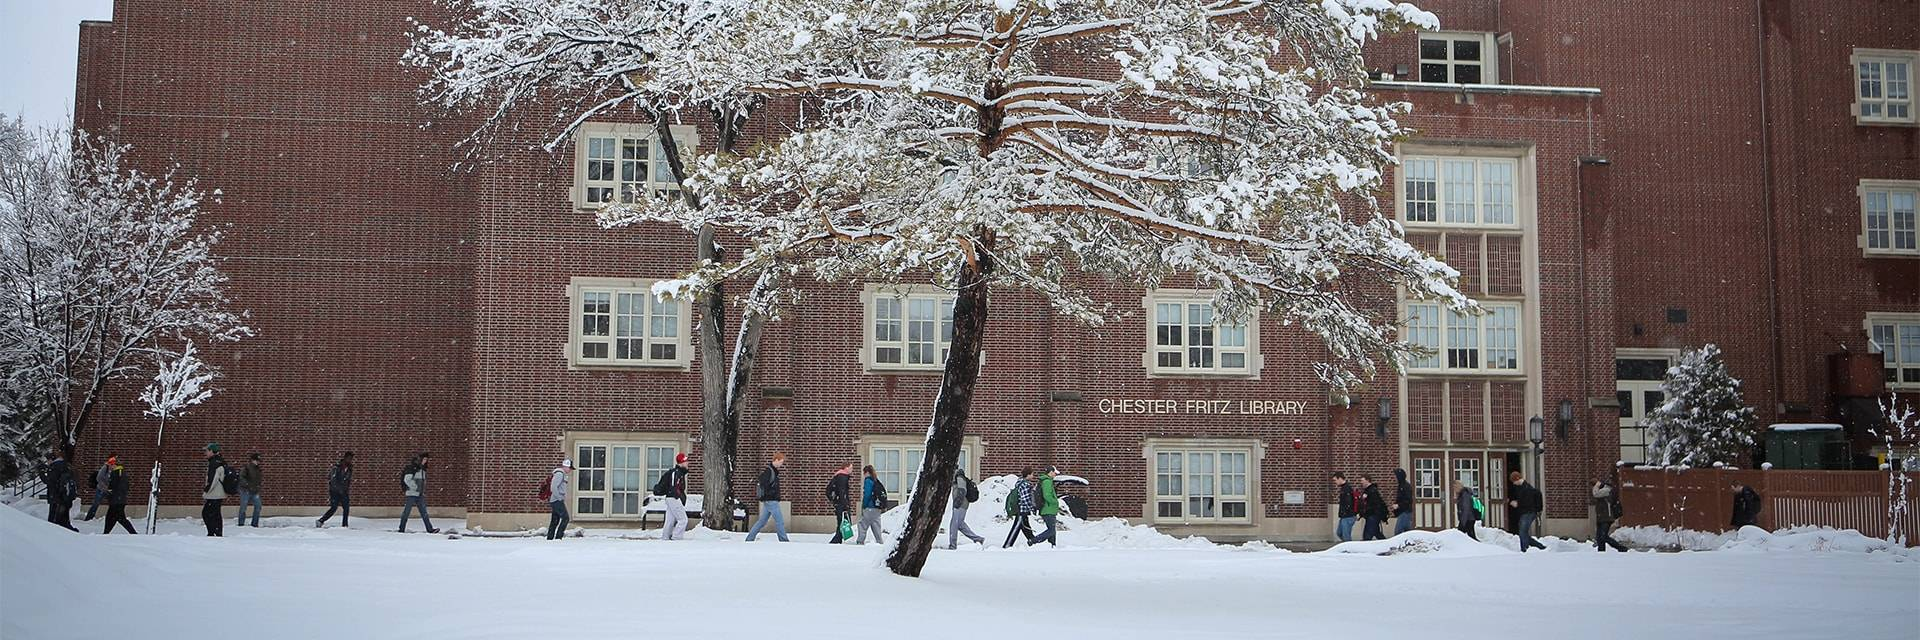 winter scene at Chester Fritz Library